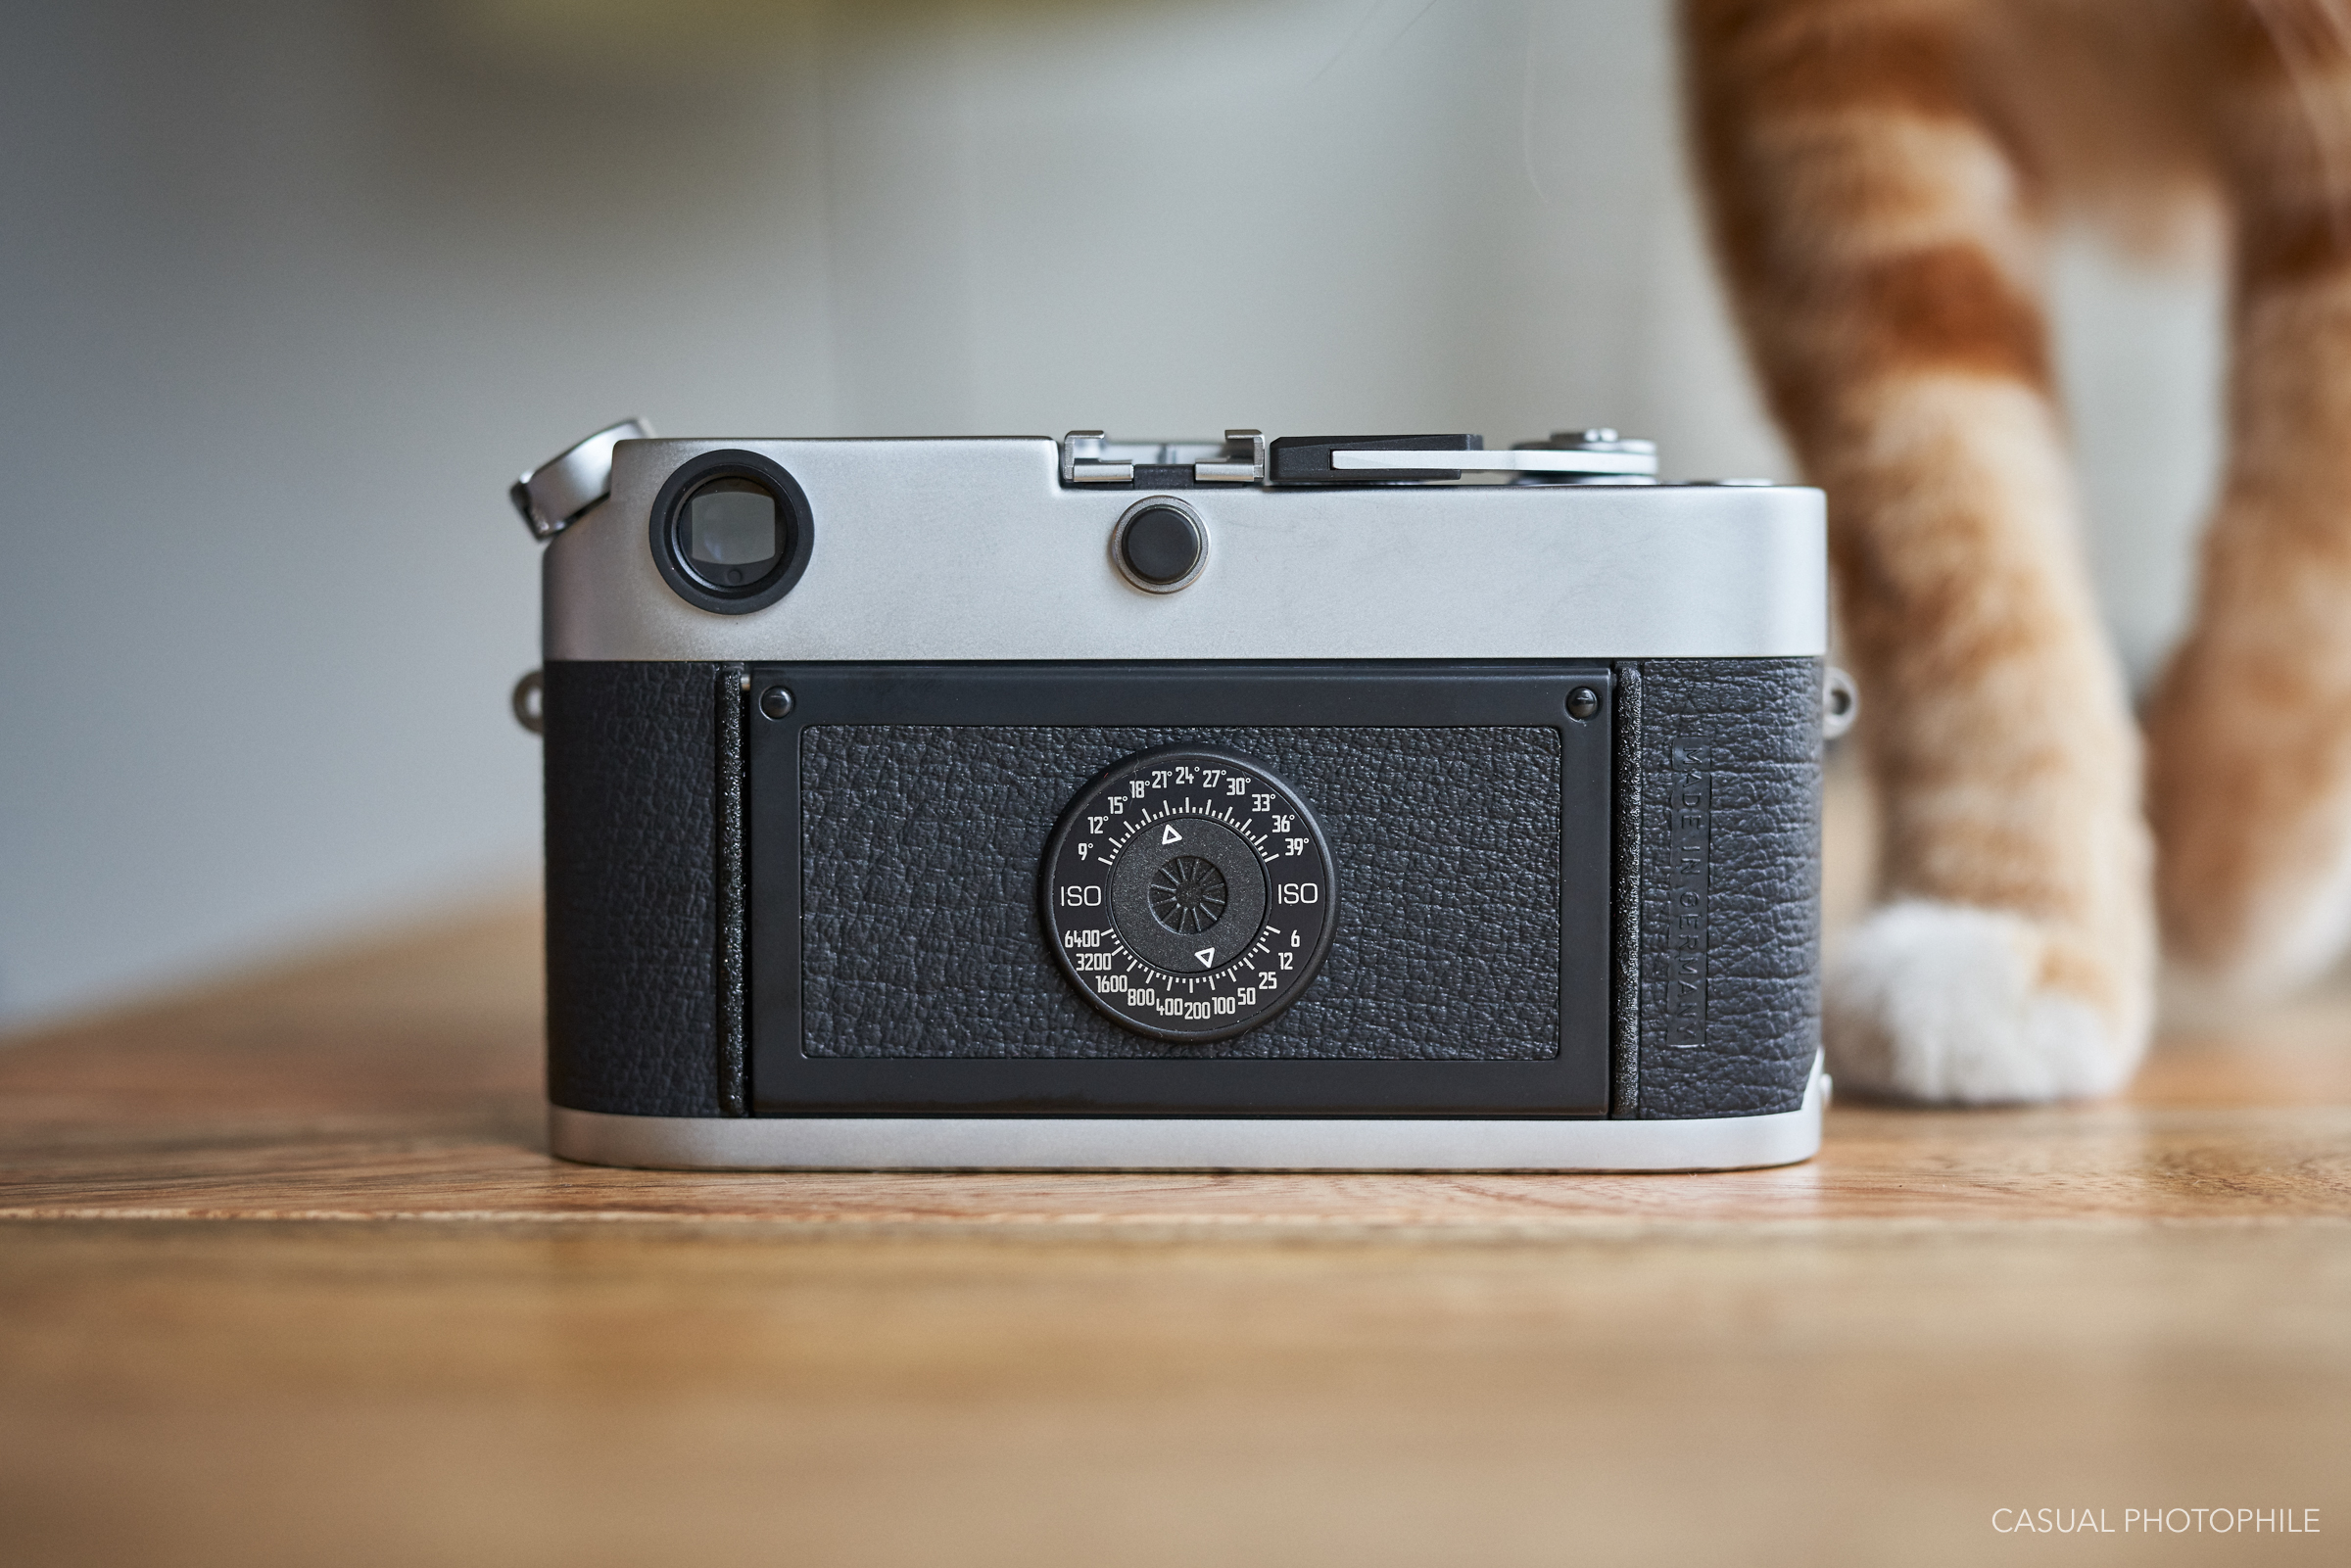 Unboxing a Brand New, Never Opened, Leica M6 Classic - Video